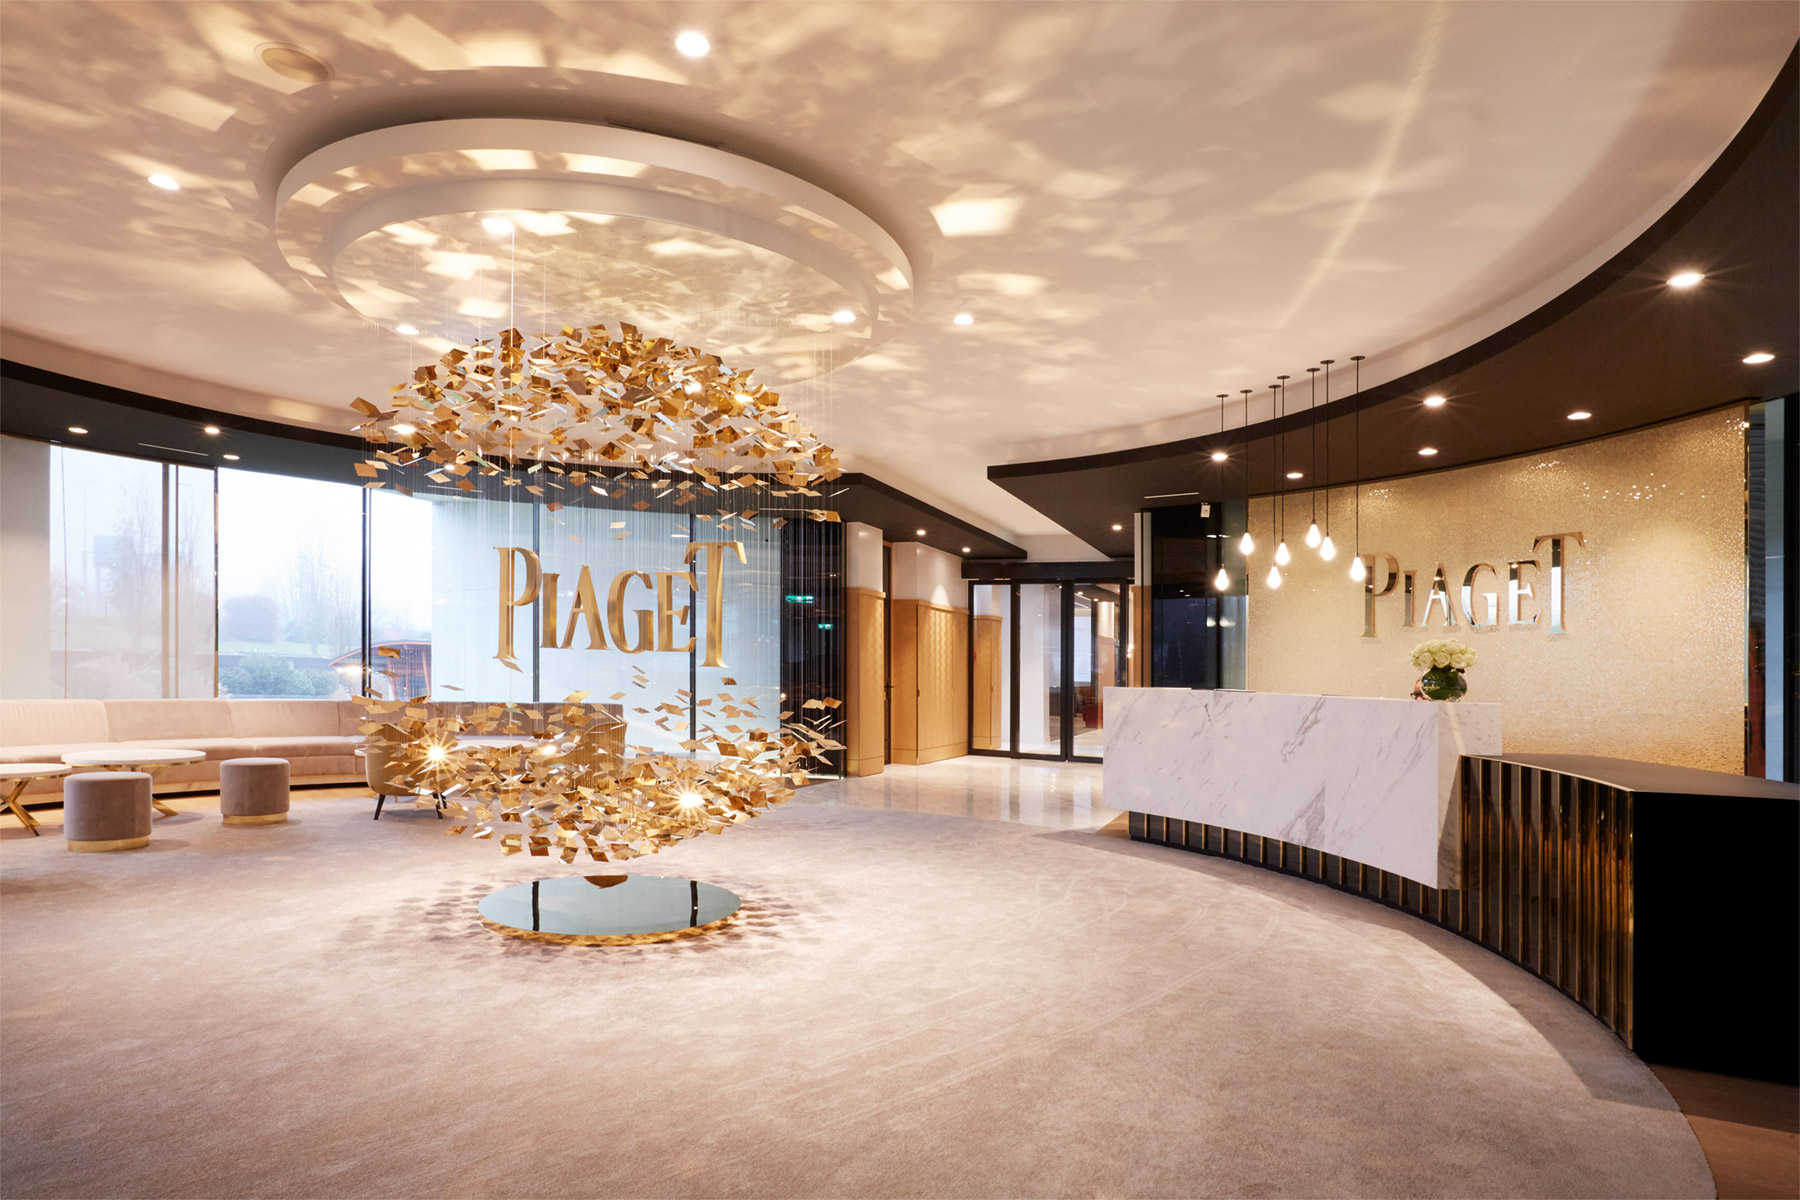 manufacture Piaget architecture Maud Guye-Vuilleme - Reception